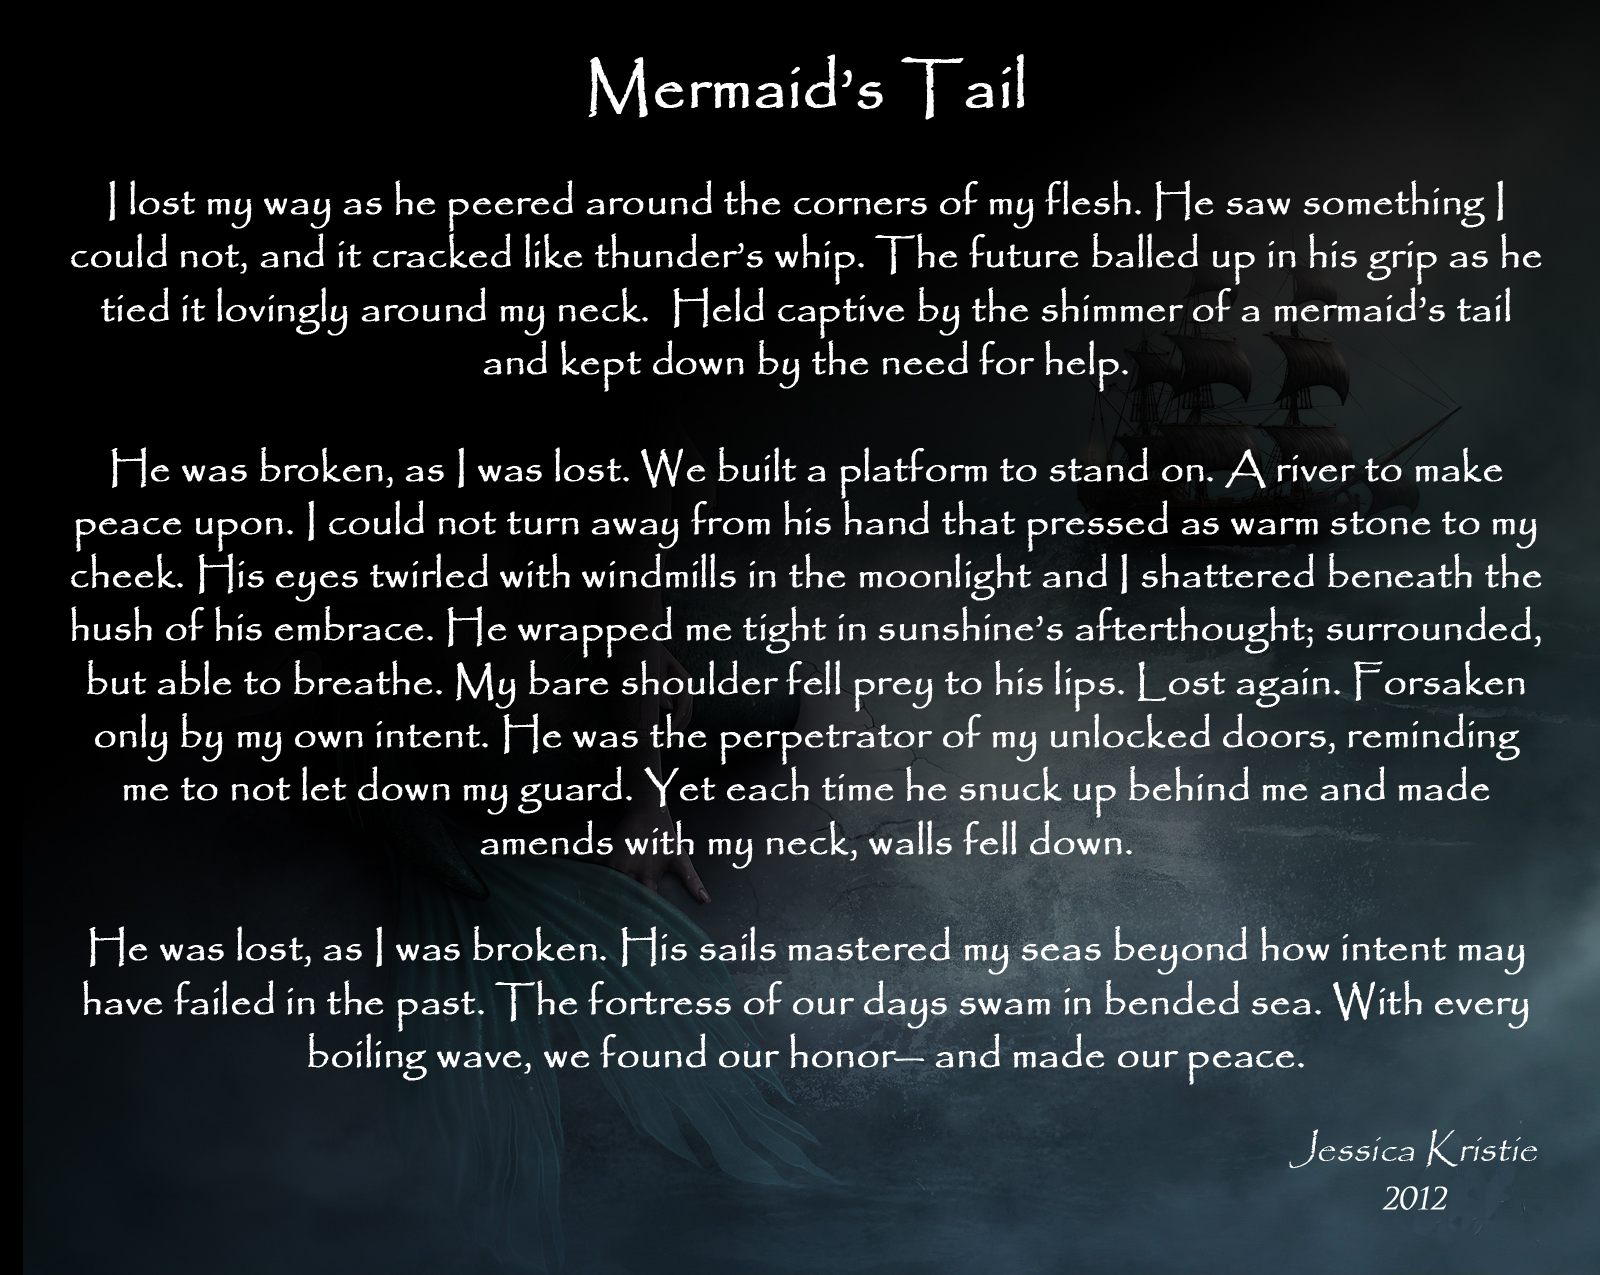 Mermaid's Tail